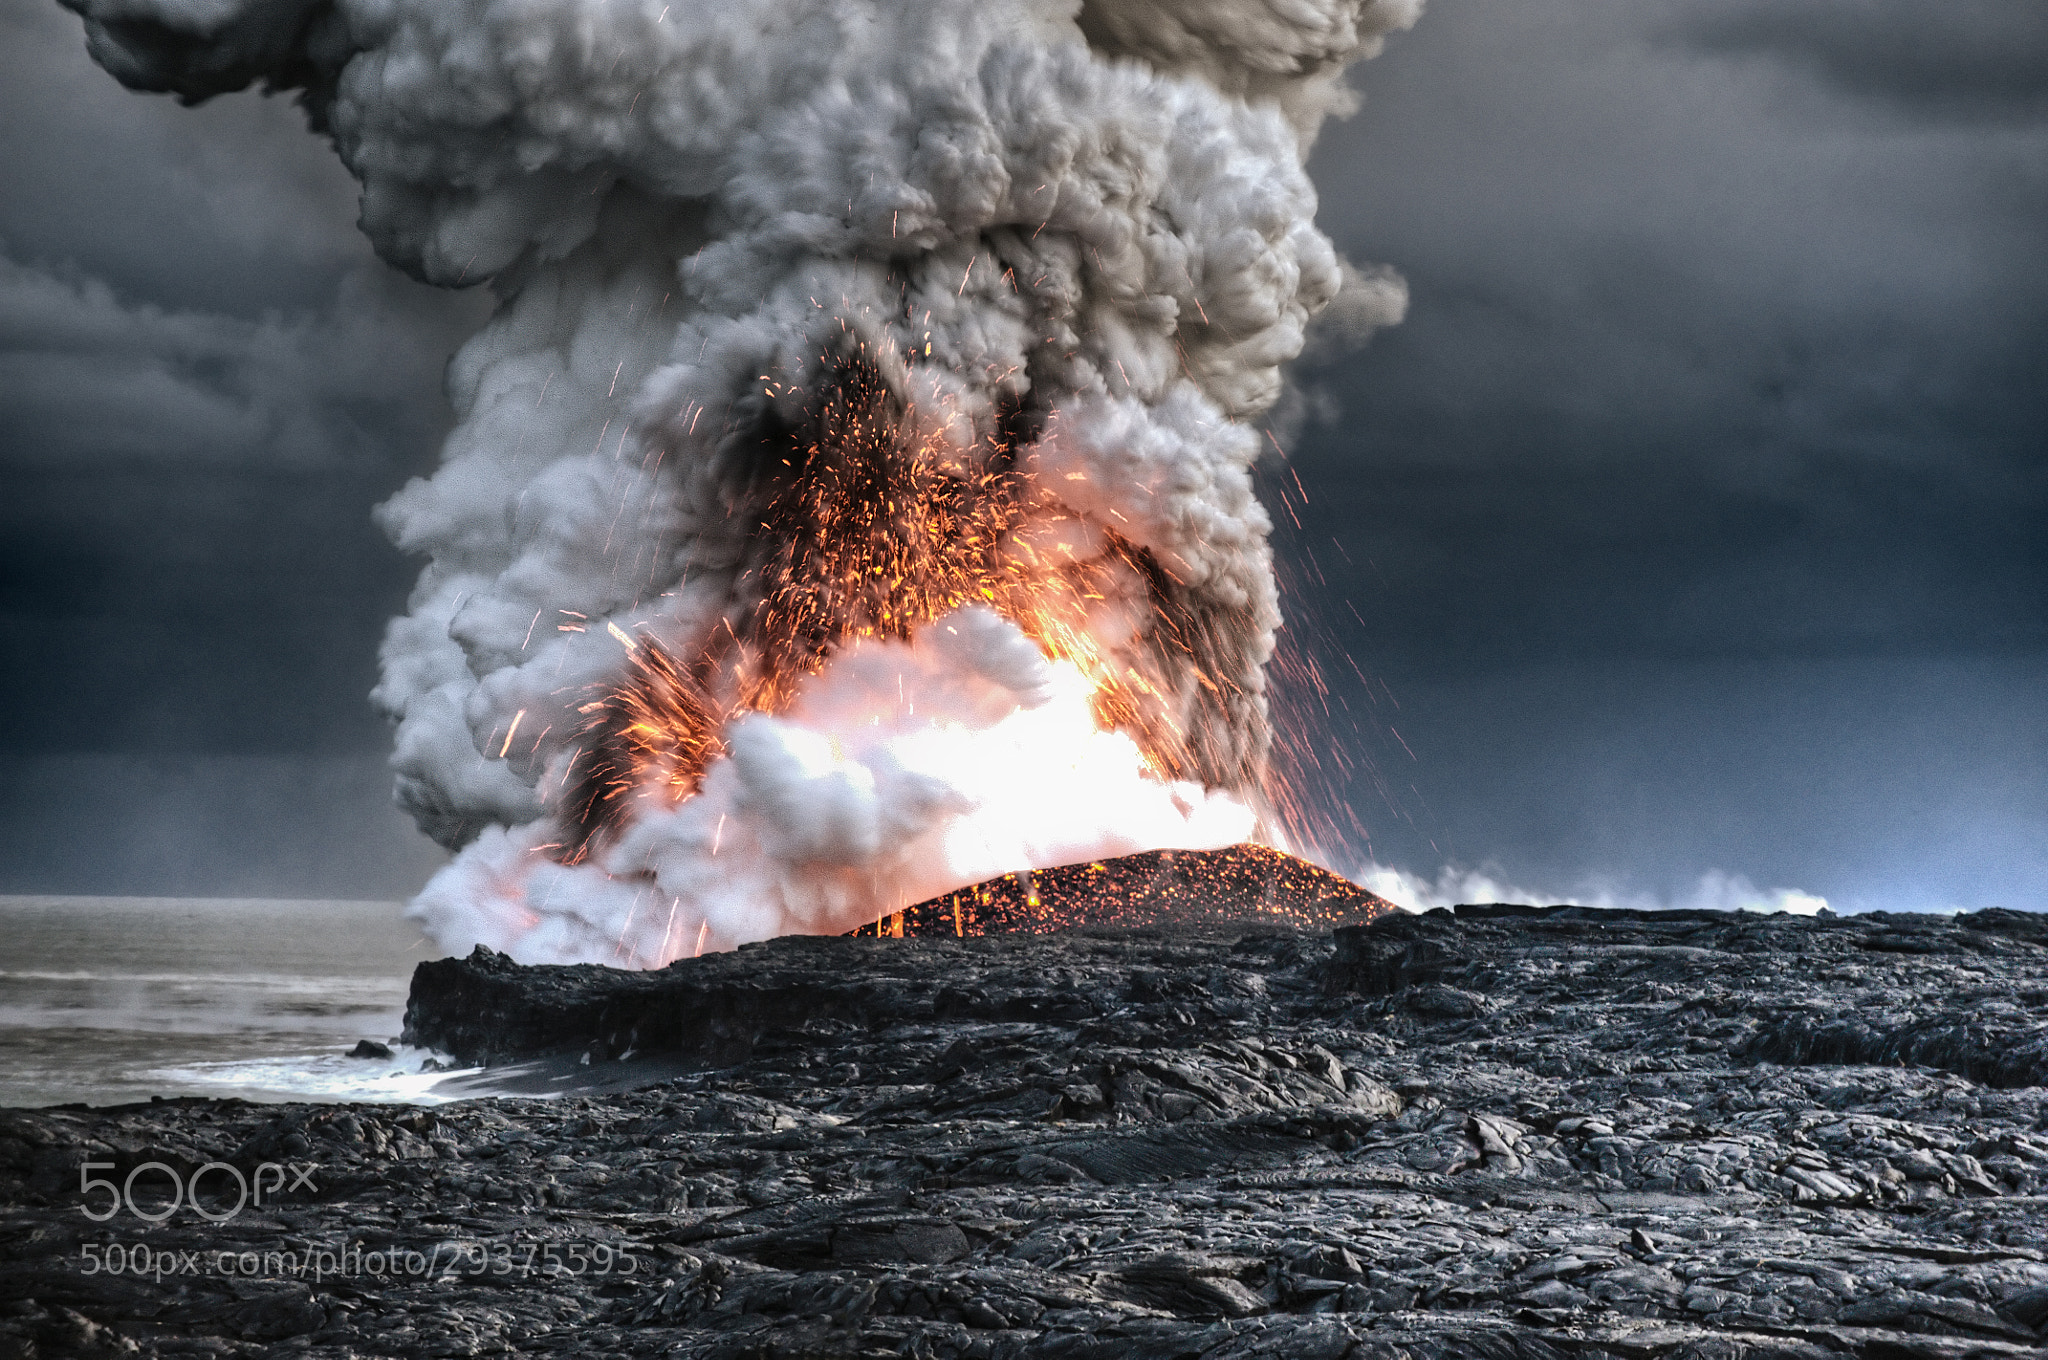 Photograph Volcano in Hawaii by Alain Barbezat on 500px